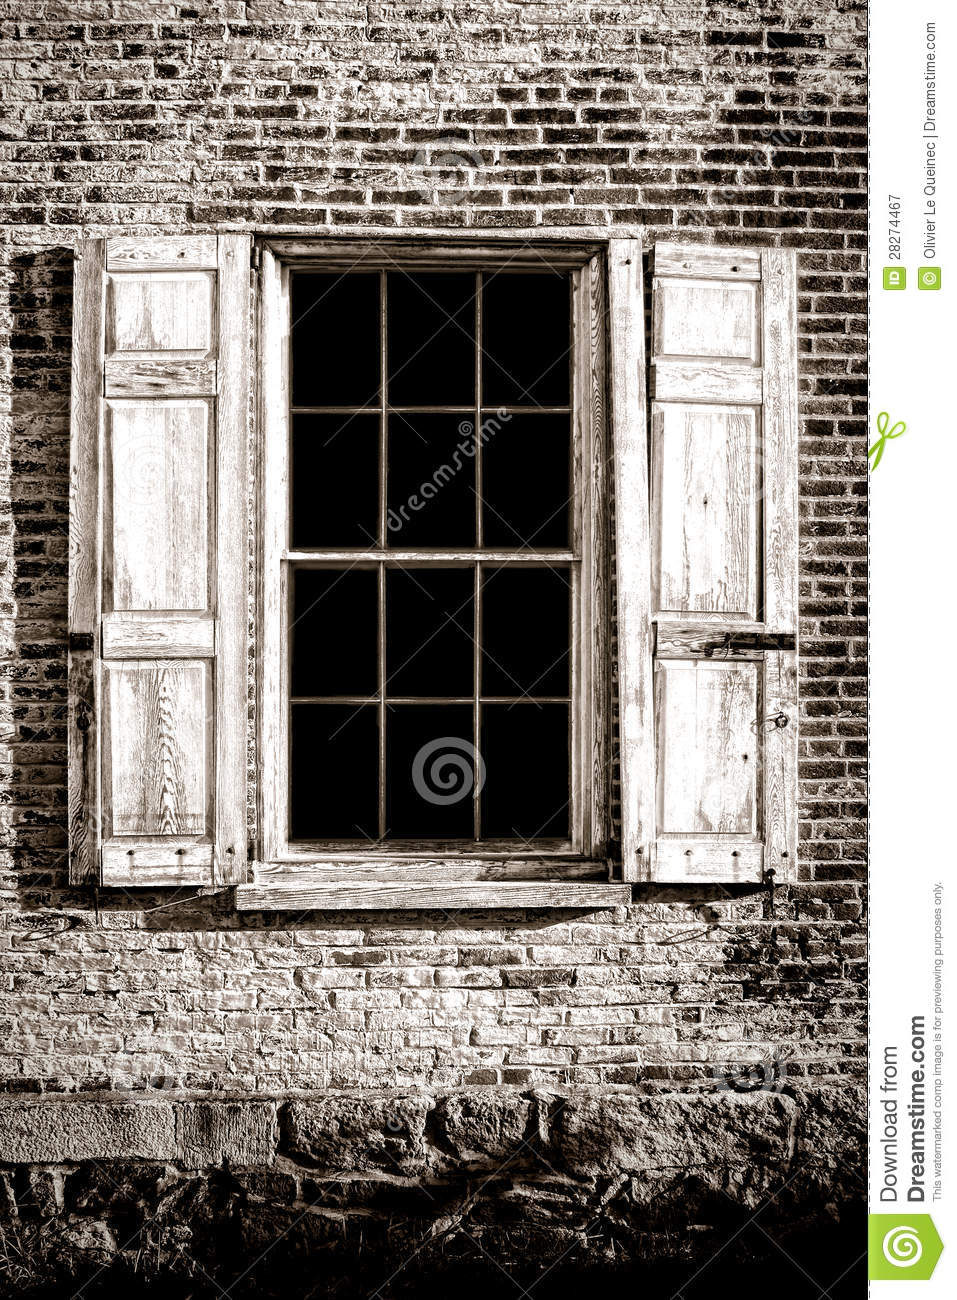 old window and wood shutters on ancient brick wall royalty free stock photography image 28274467. Black Bedroom Furniture Sets. Home Design Ideas